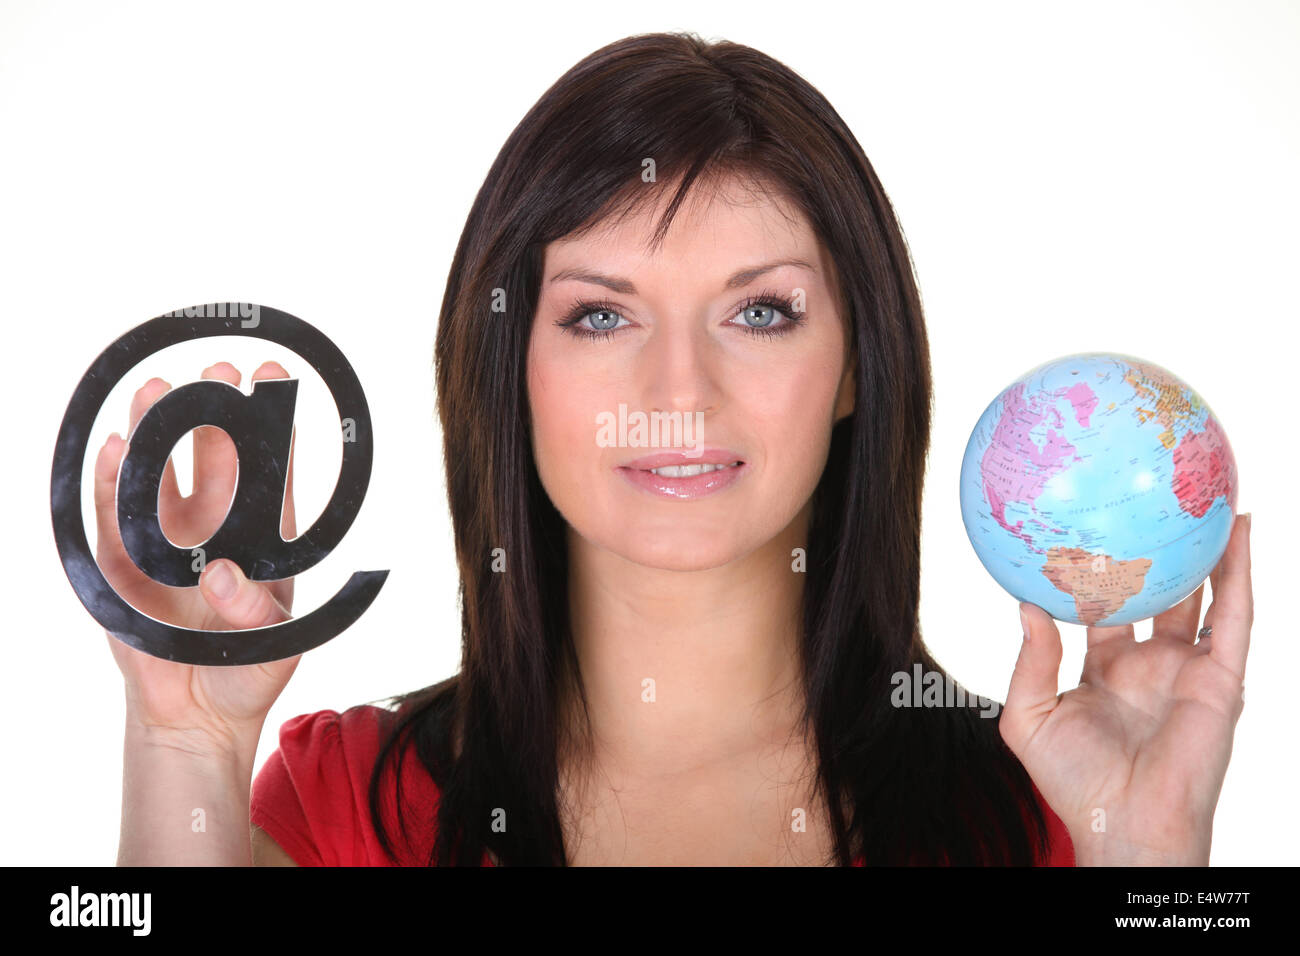 Woman holding globe and at symbol - Stock Image